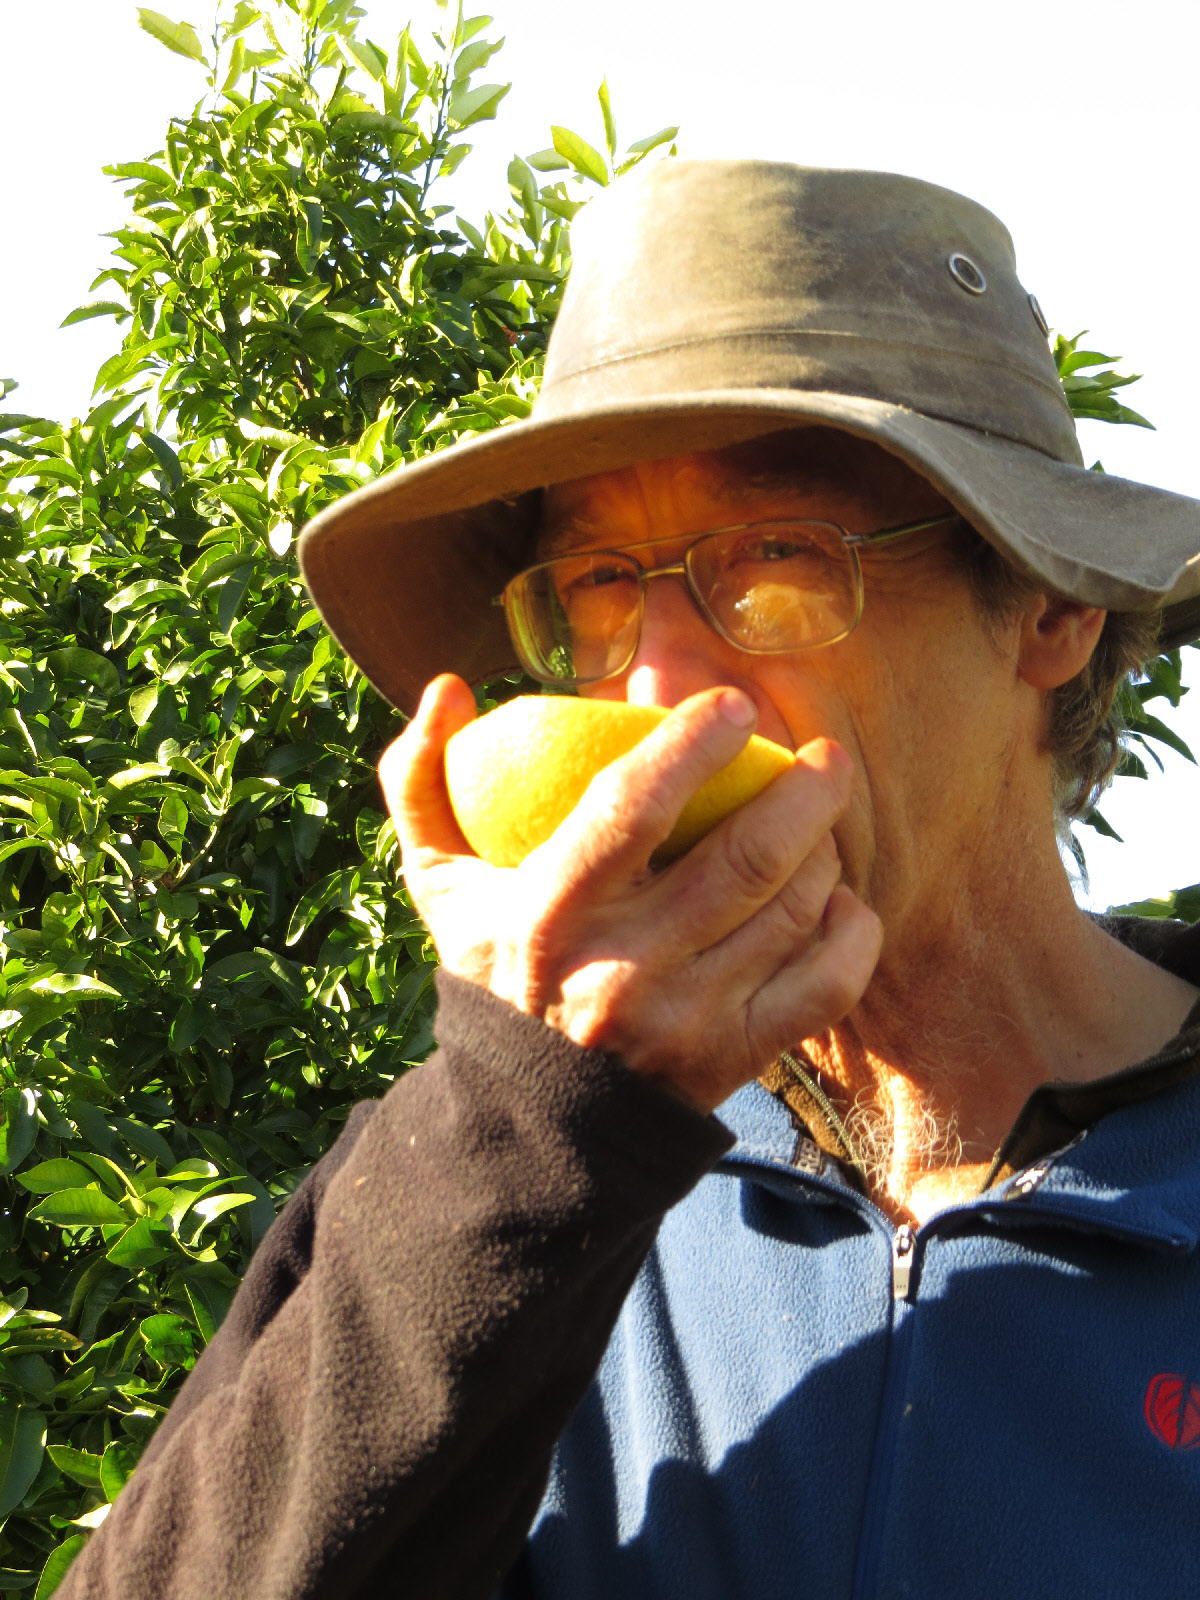 clive lewis - grapefruit grower from gisborne